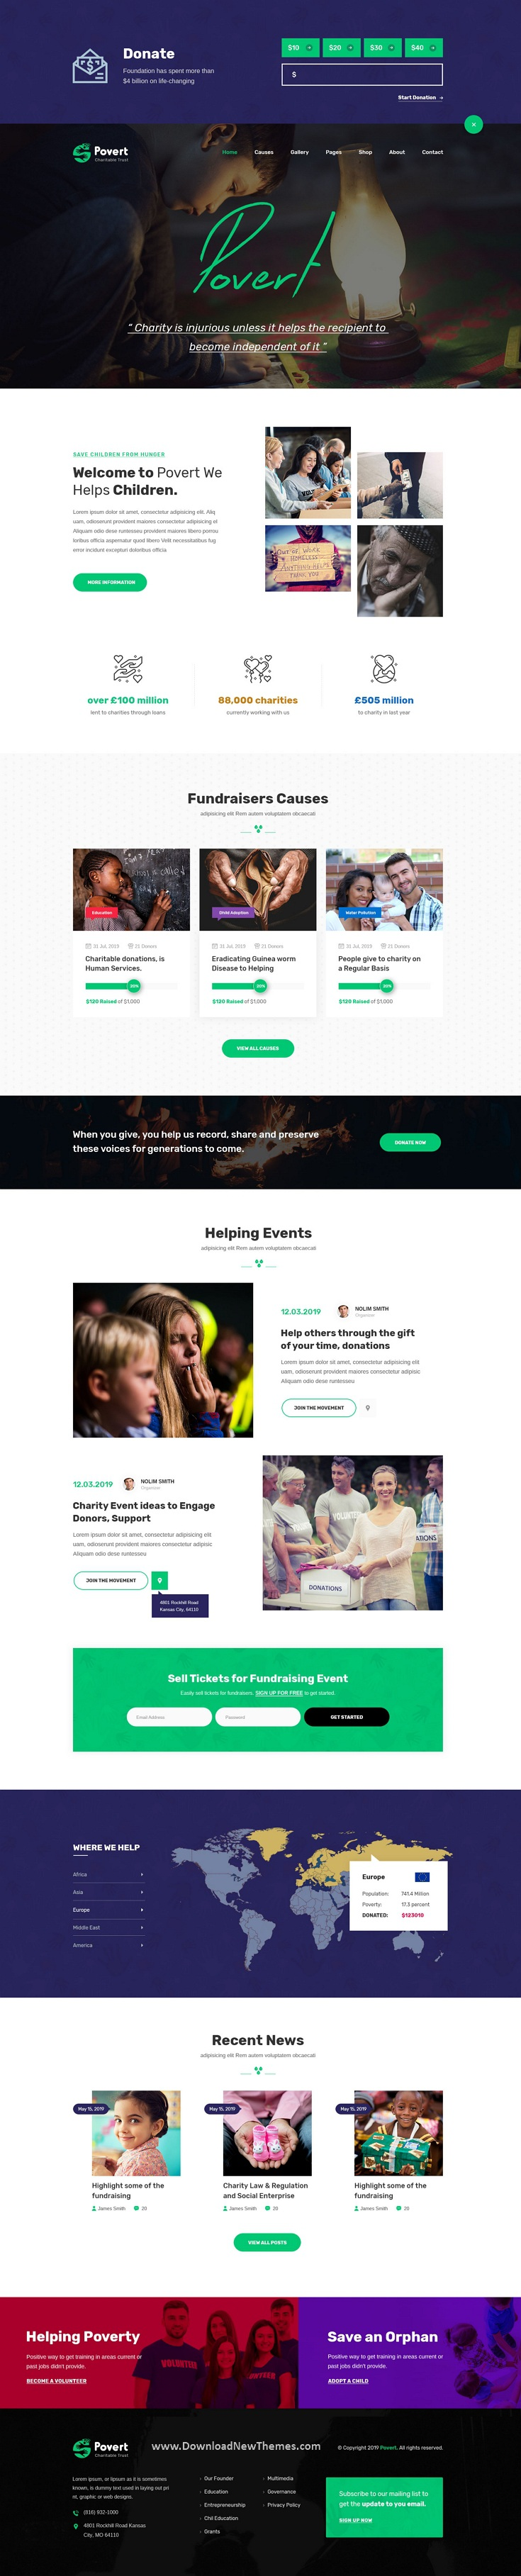 Nonprofits Charity Adobe XD Template